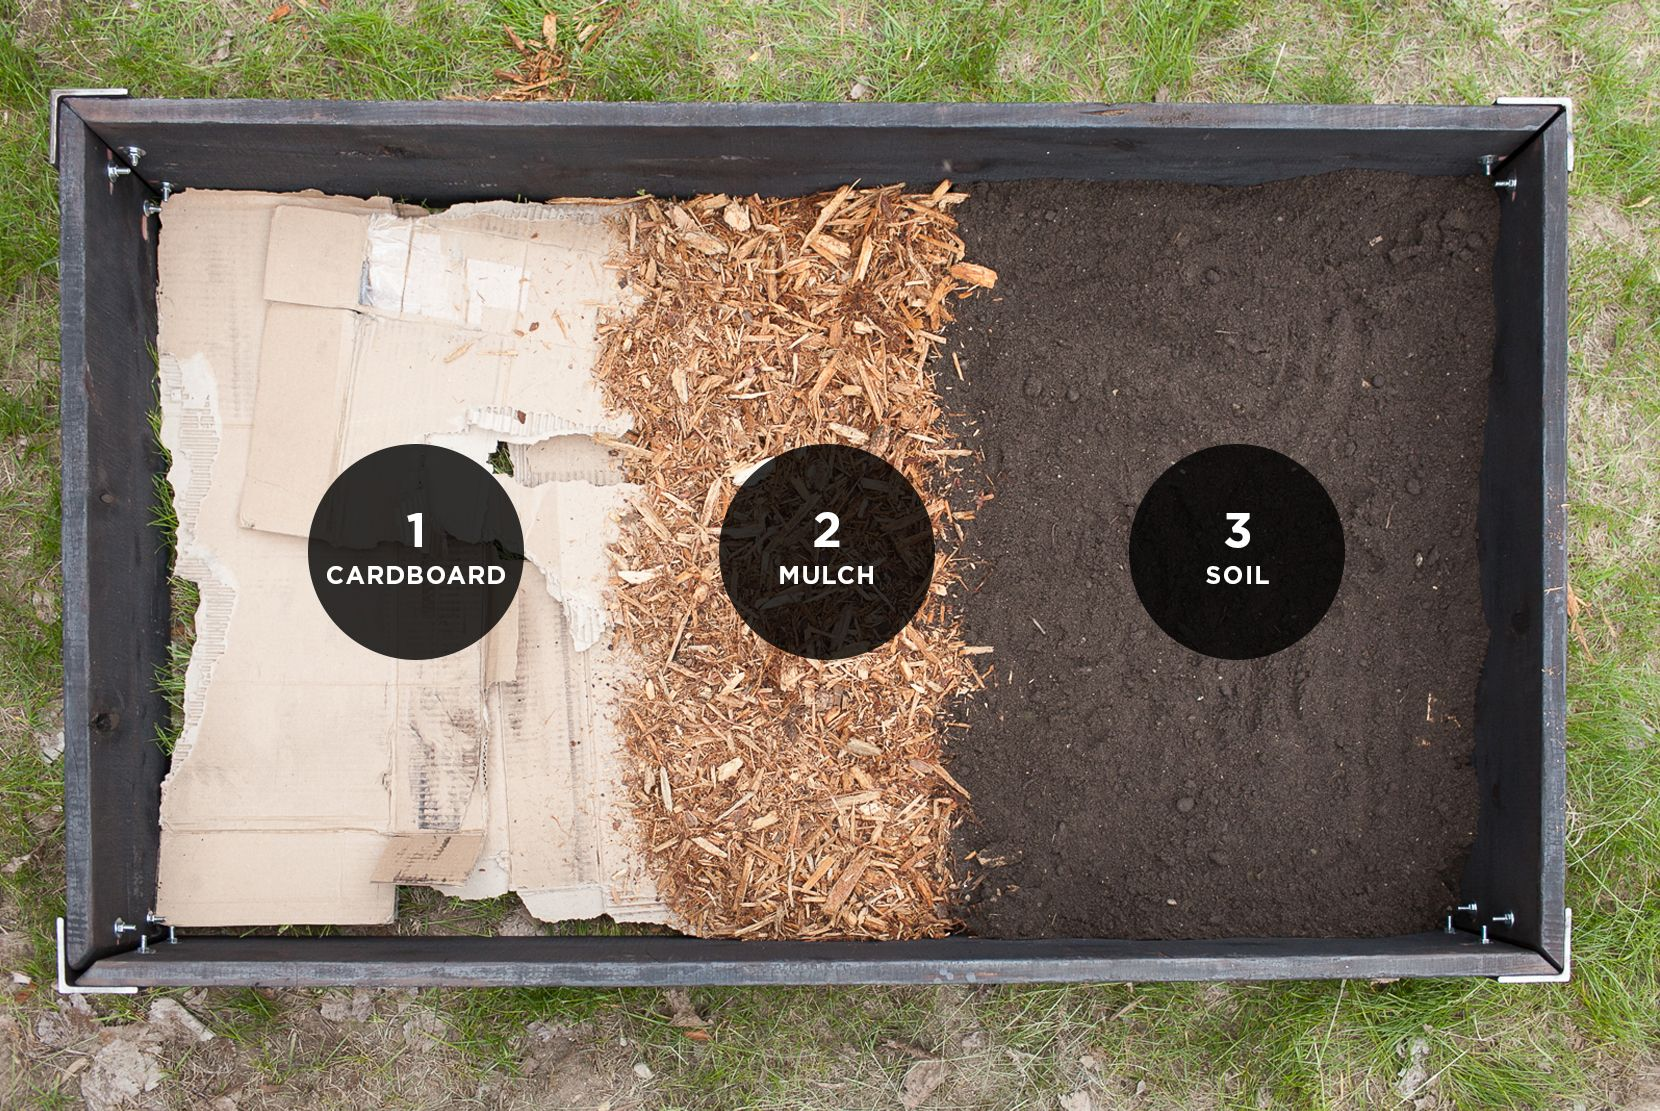 How To Fill A Raised Vegetable Garden Bed